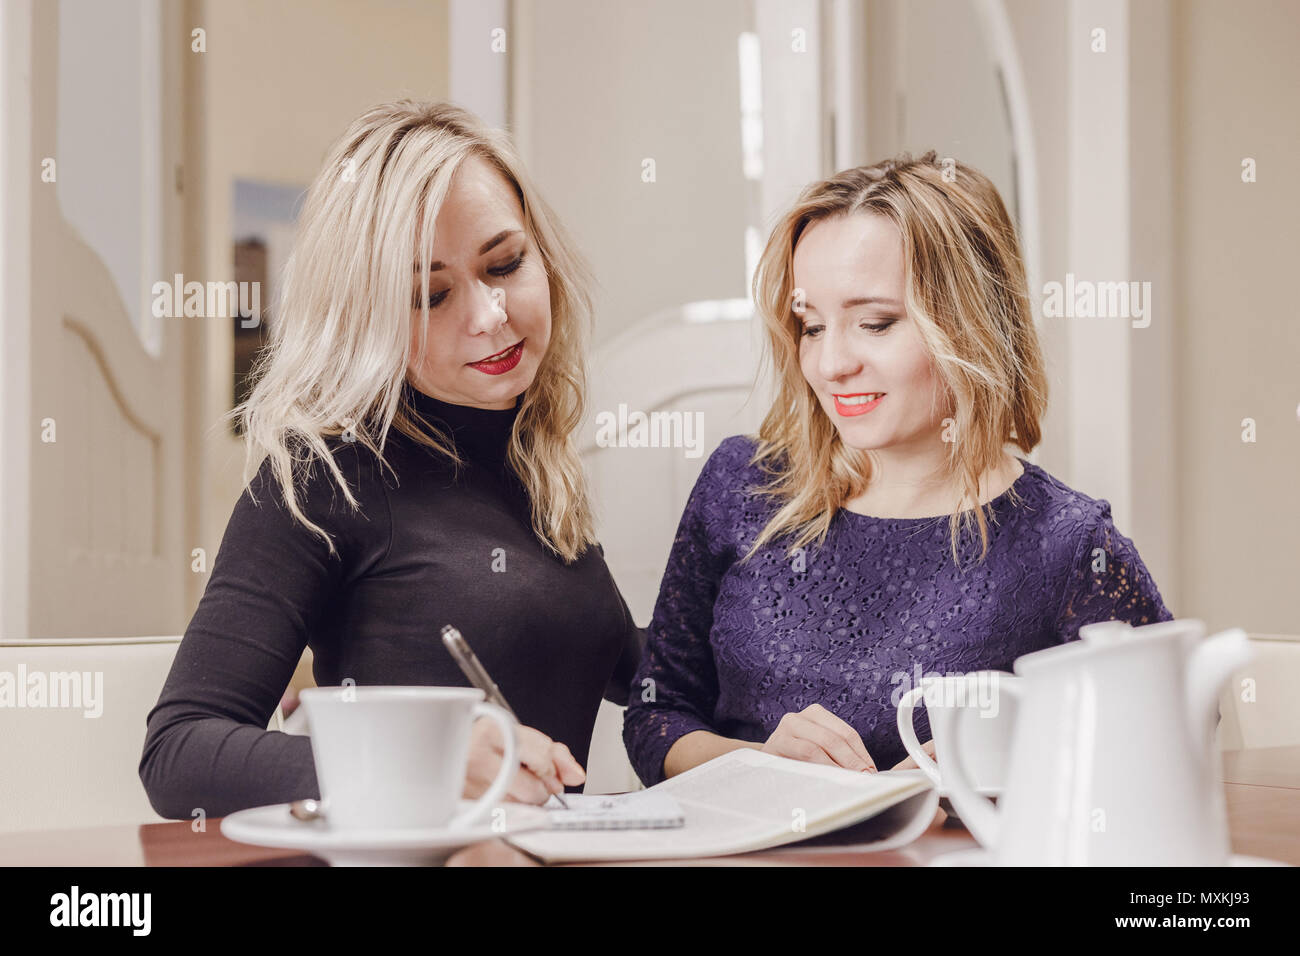 Two young women discussing documents and drinking tea at meeting in conference room - Stock Image